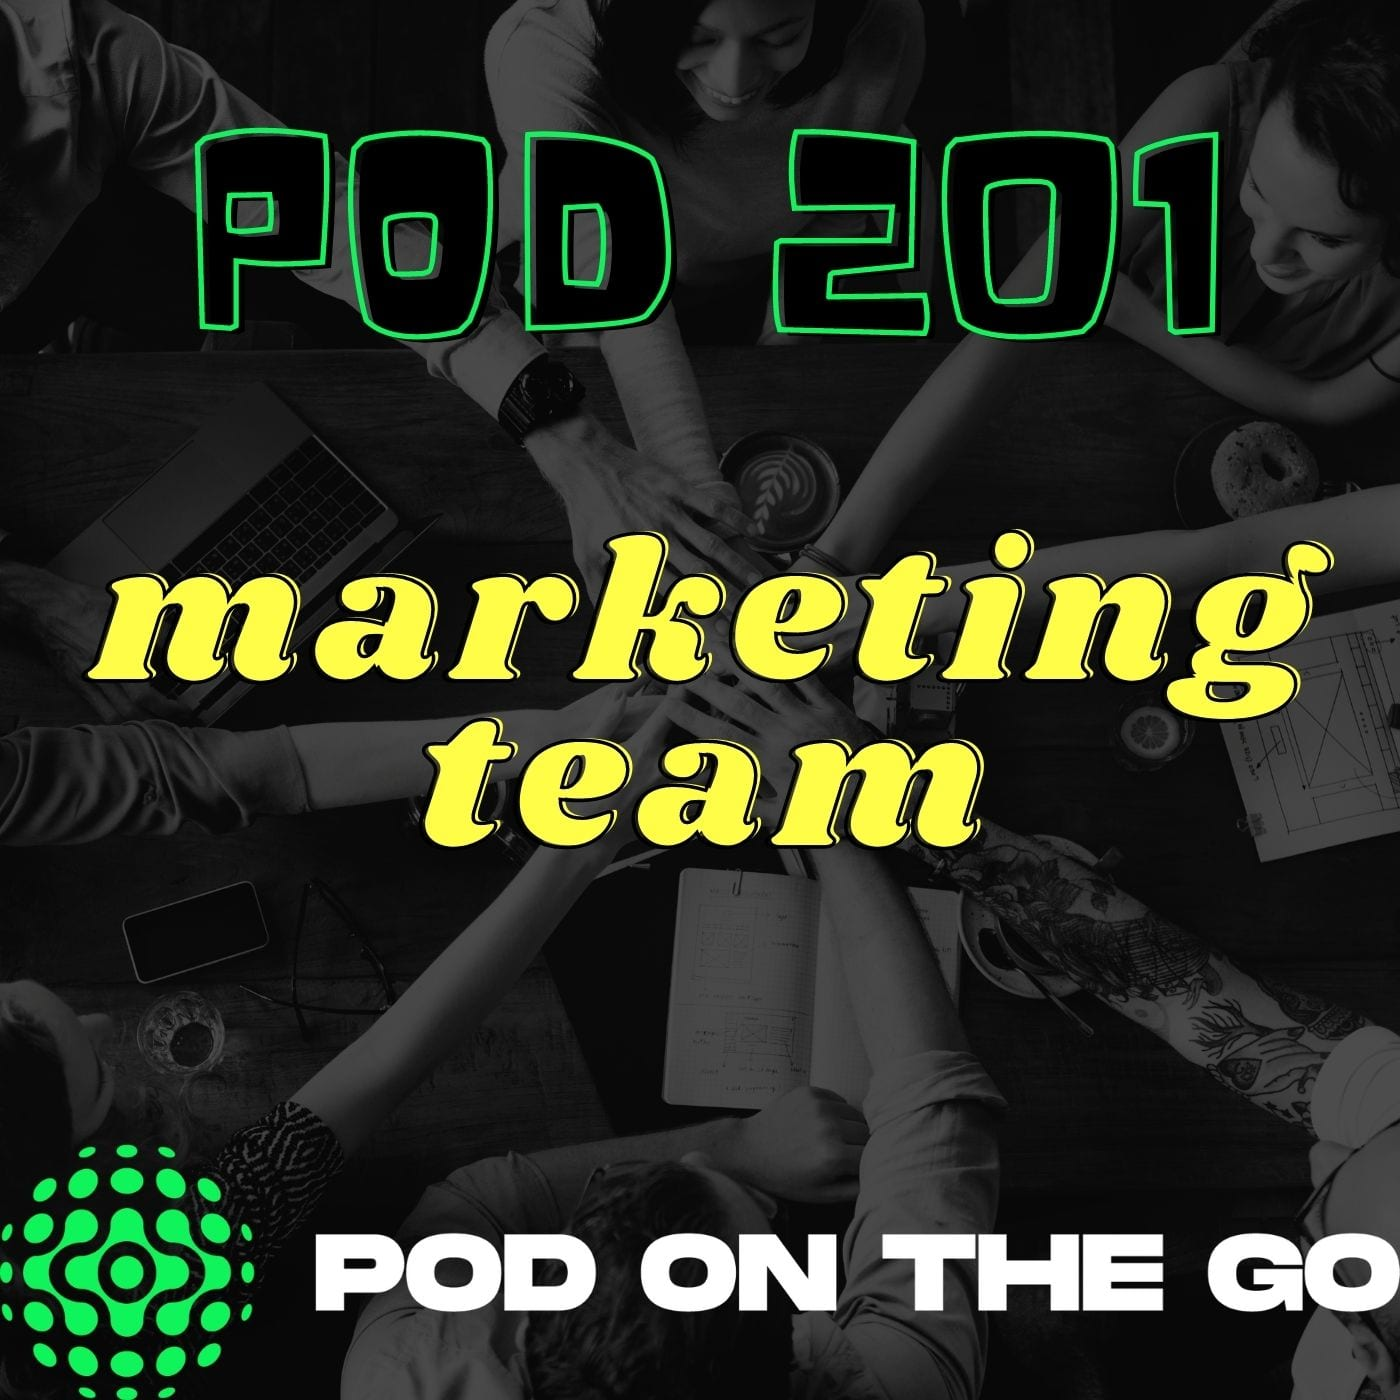 podcast marketing team